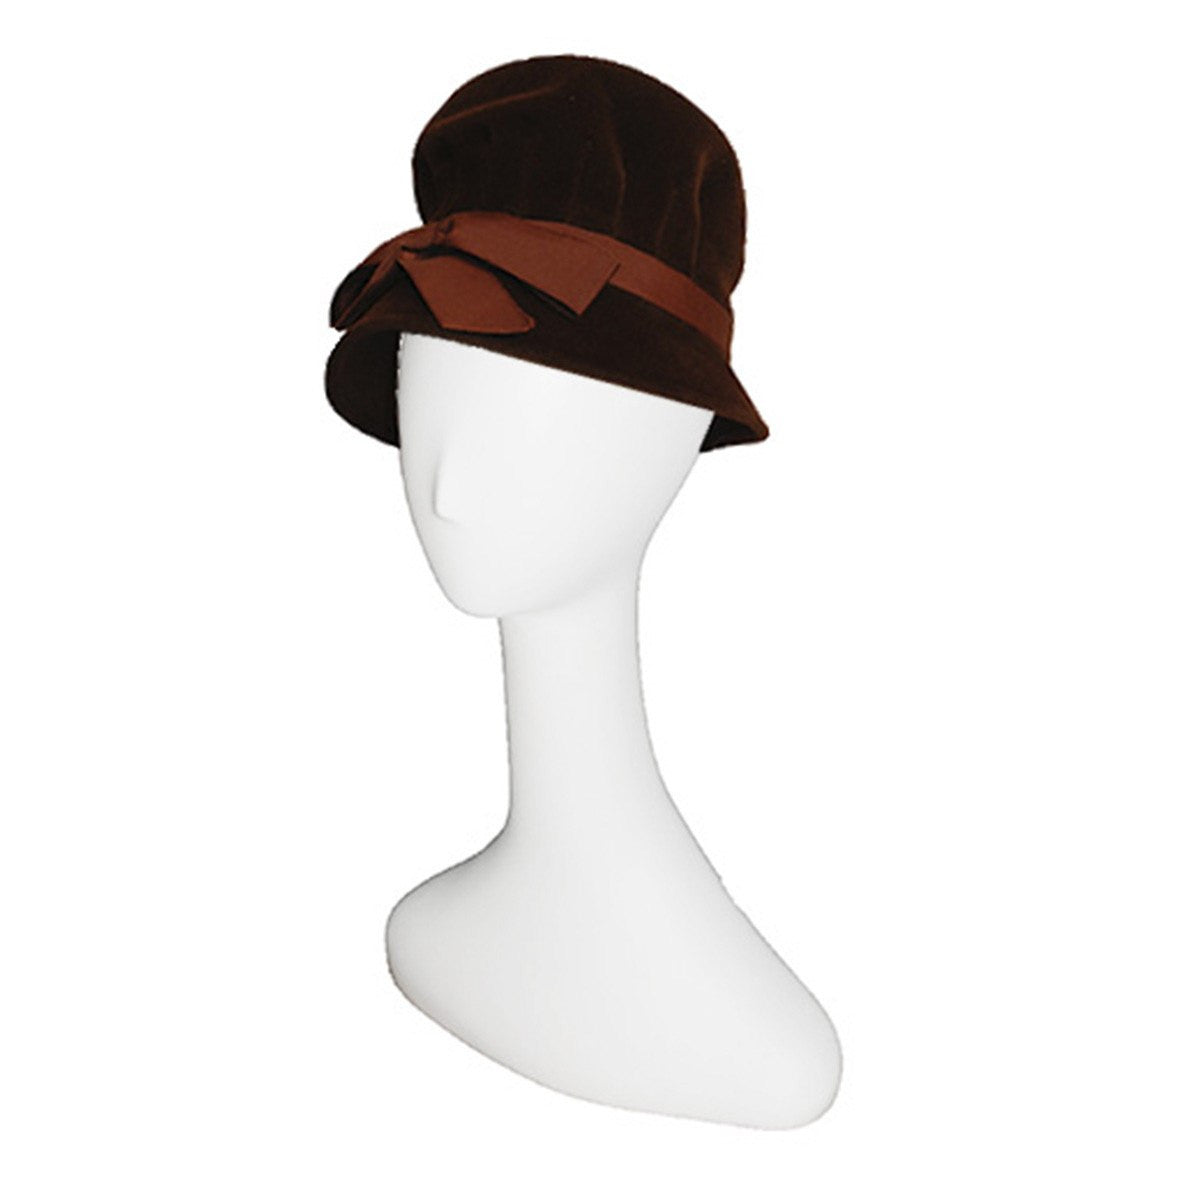 1960s Brown Velvet Tall Hat by Fashion Guild, Size 20.5